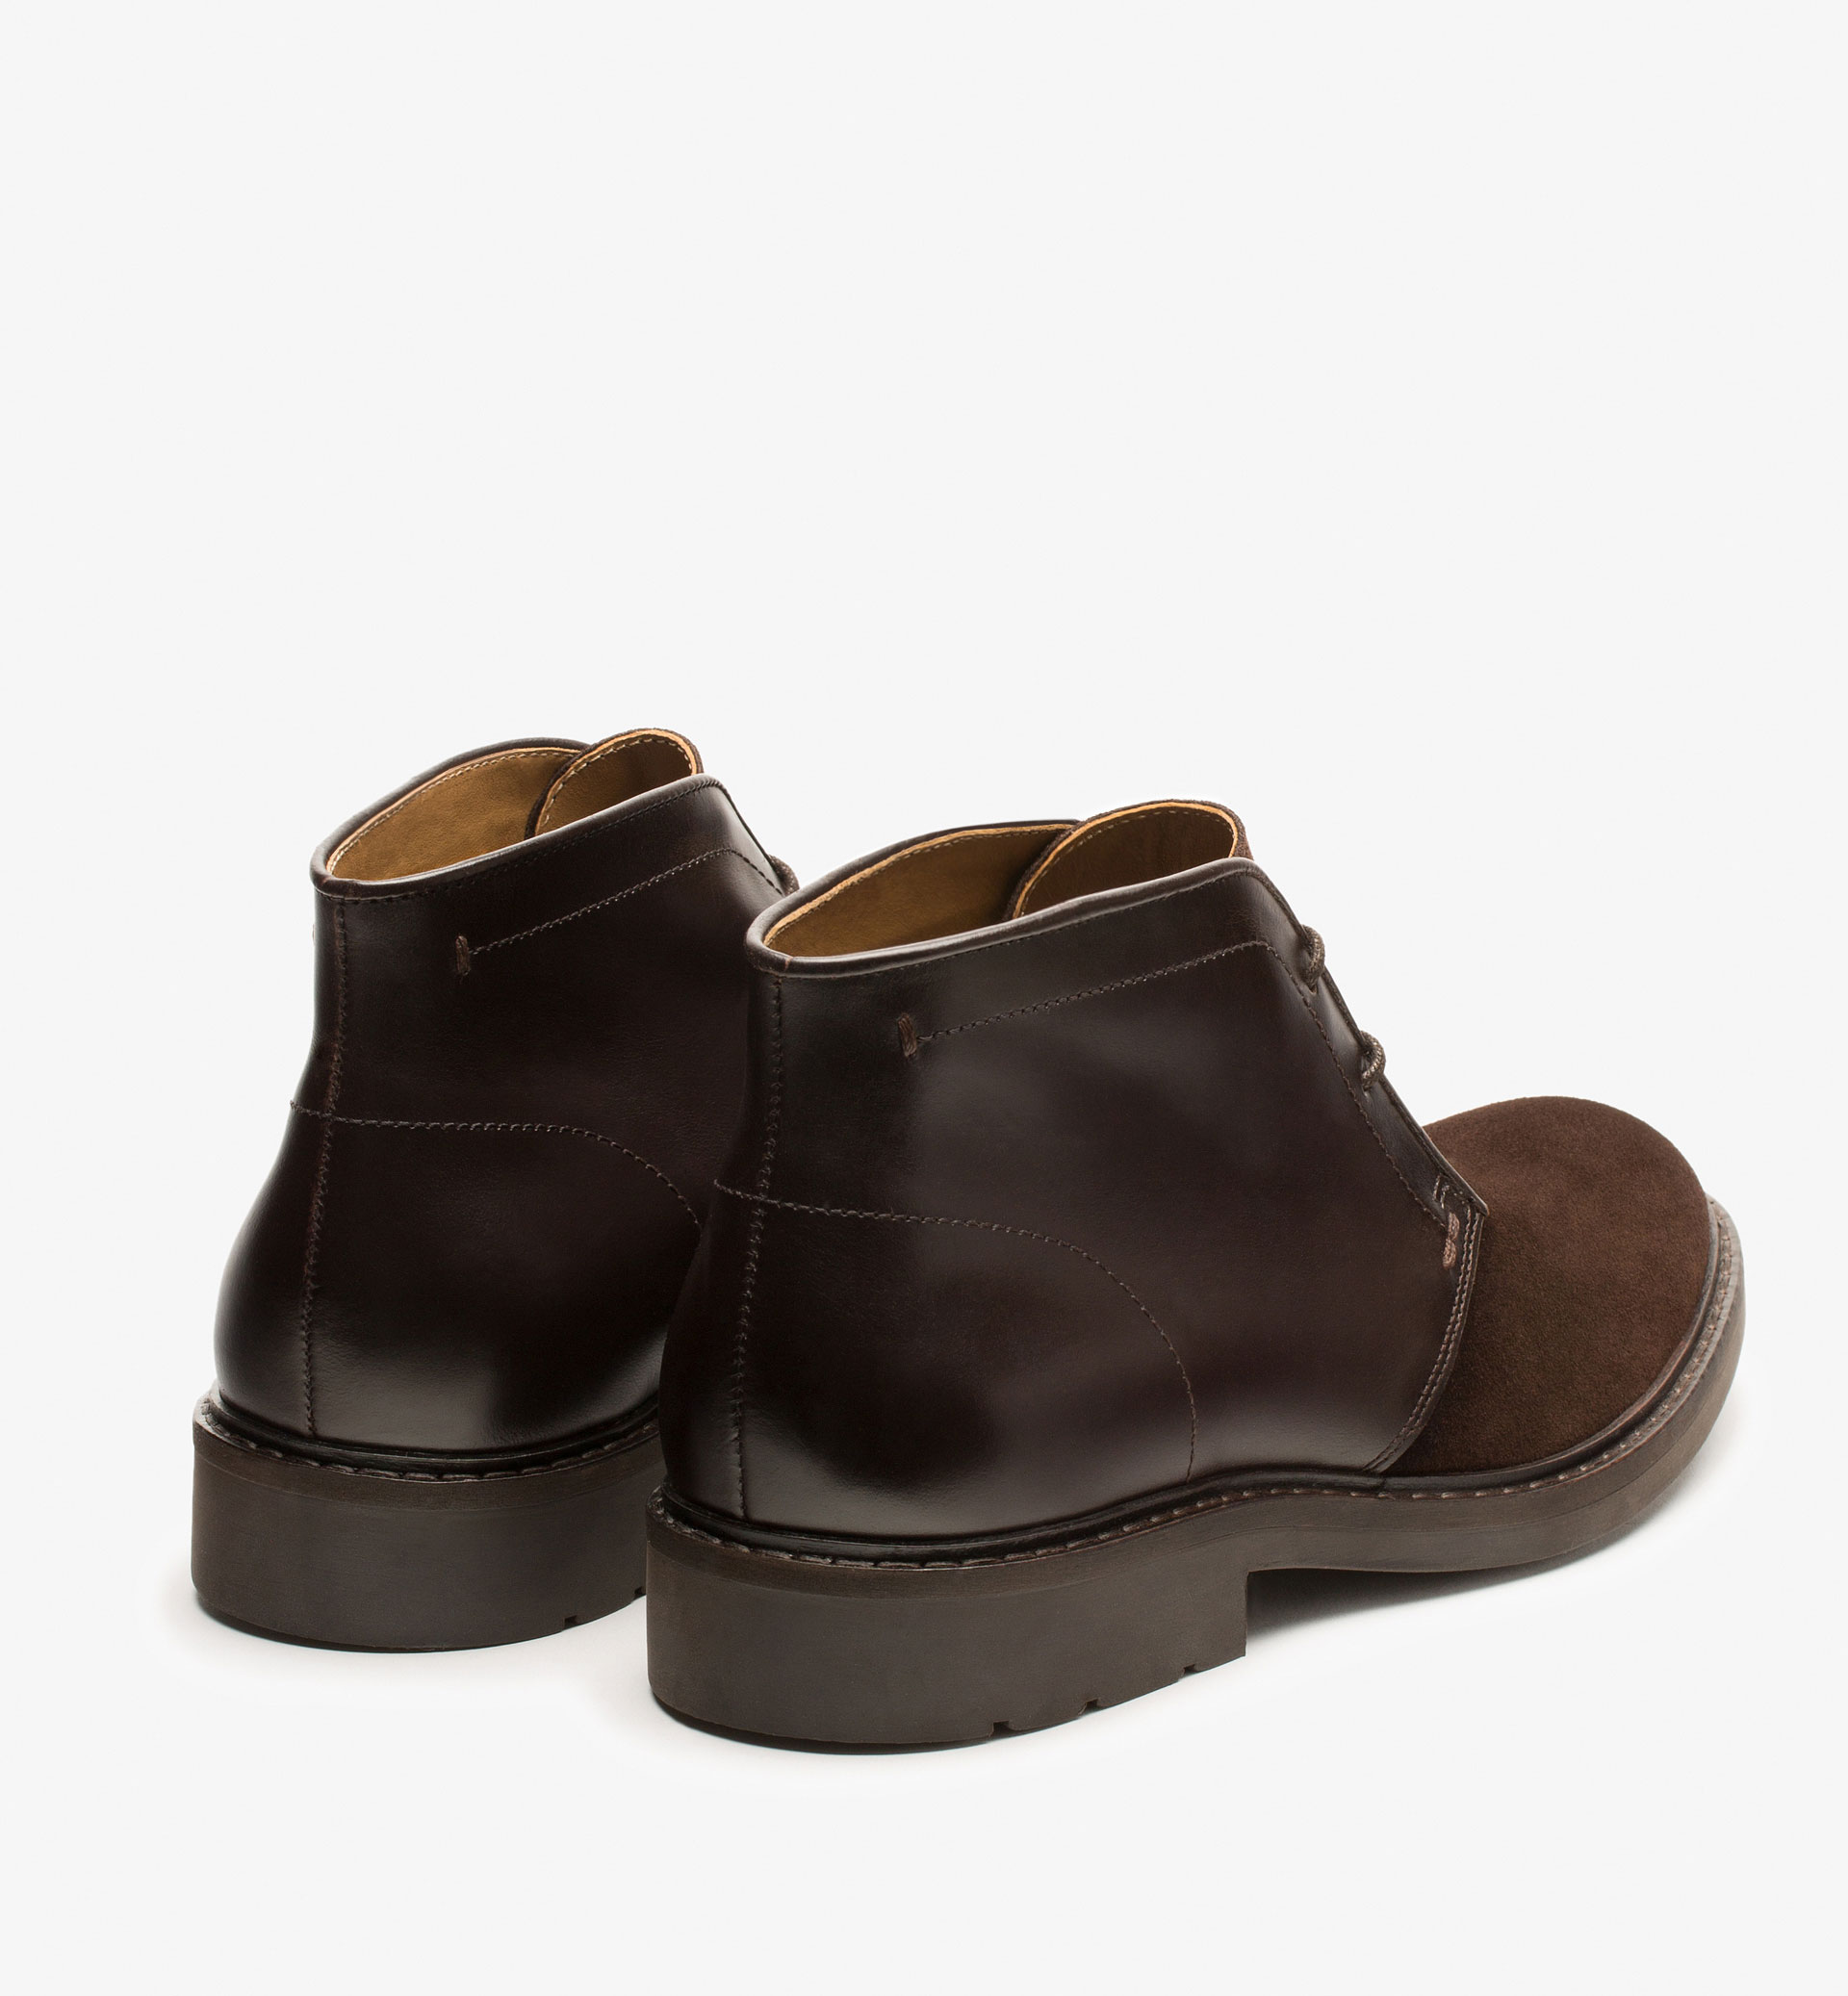 CONTRAST SAFARI ANKLE BOOTS